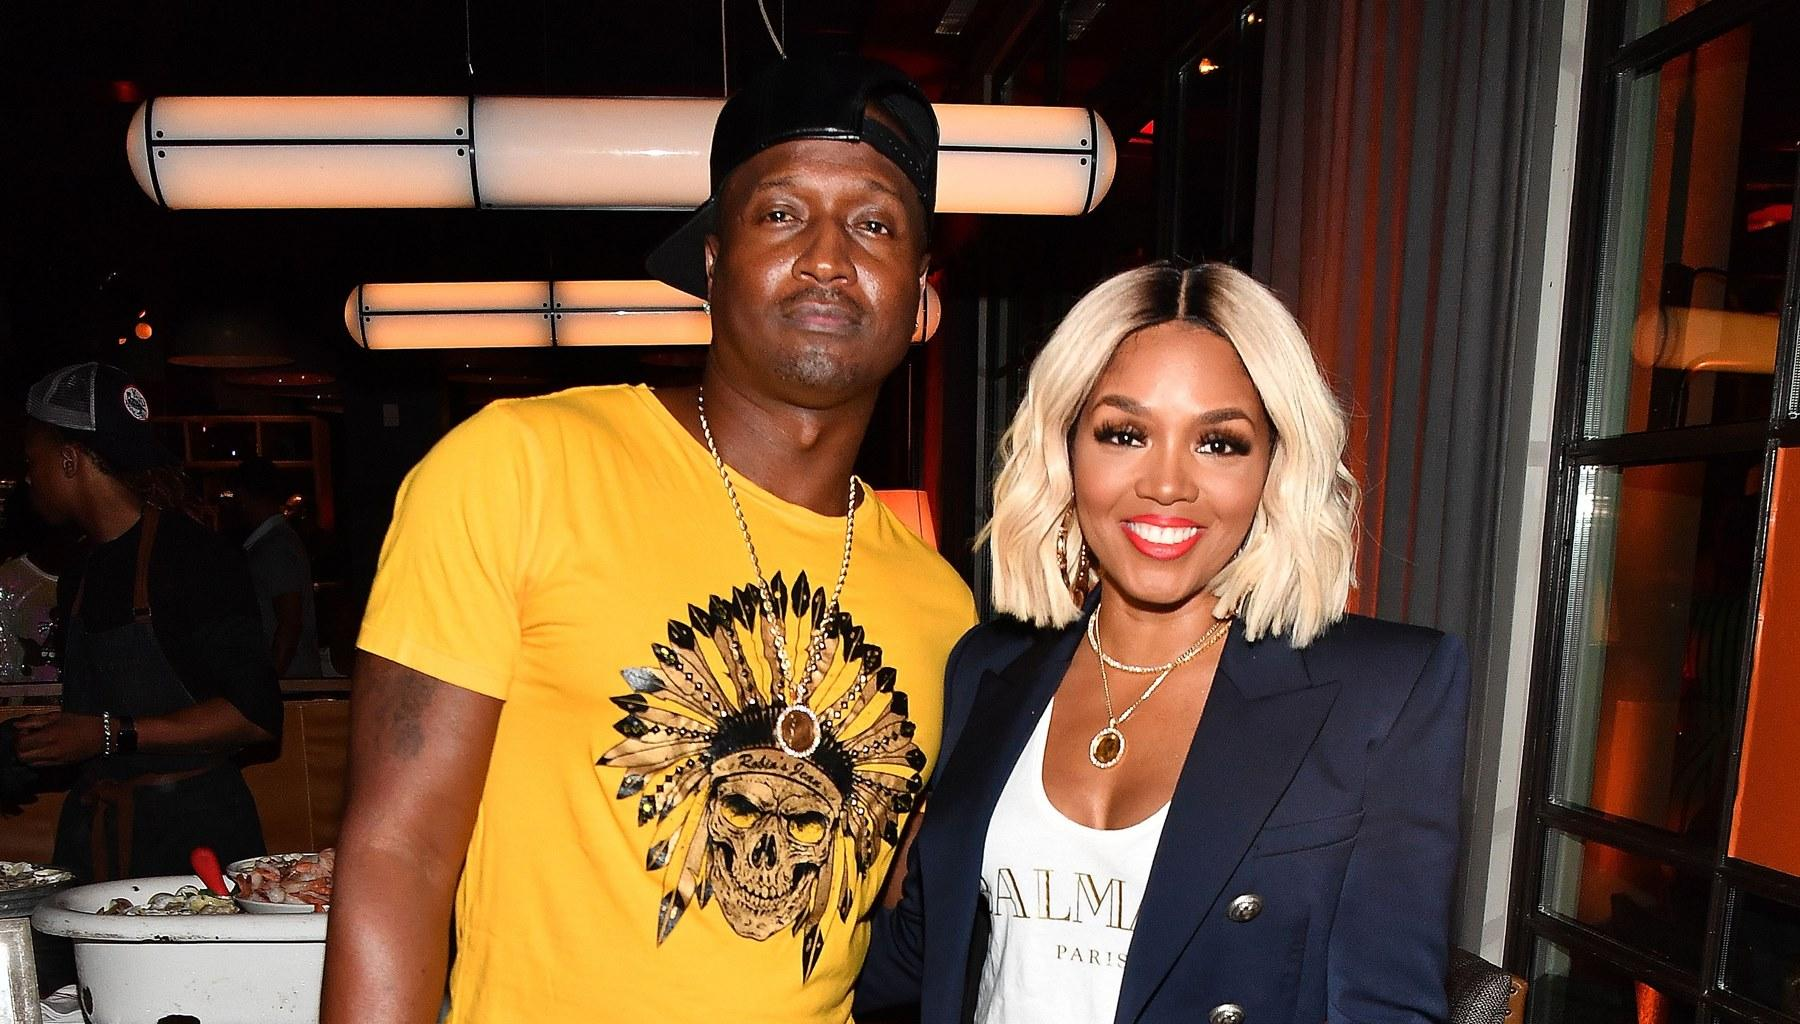 Rasheeda Frost Teams Up With Her Frustrated Husband, Kirk Frost, In Videos Addressing Rumors That She Lied About Her Age And She Got Married At 17 -- 'Love & Hip Hop: Atlanta' Fans Think This Is The New Storyline After The Jasmine Washington Baby Drama